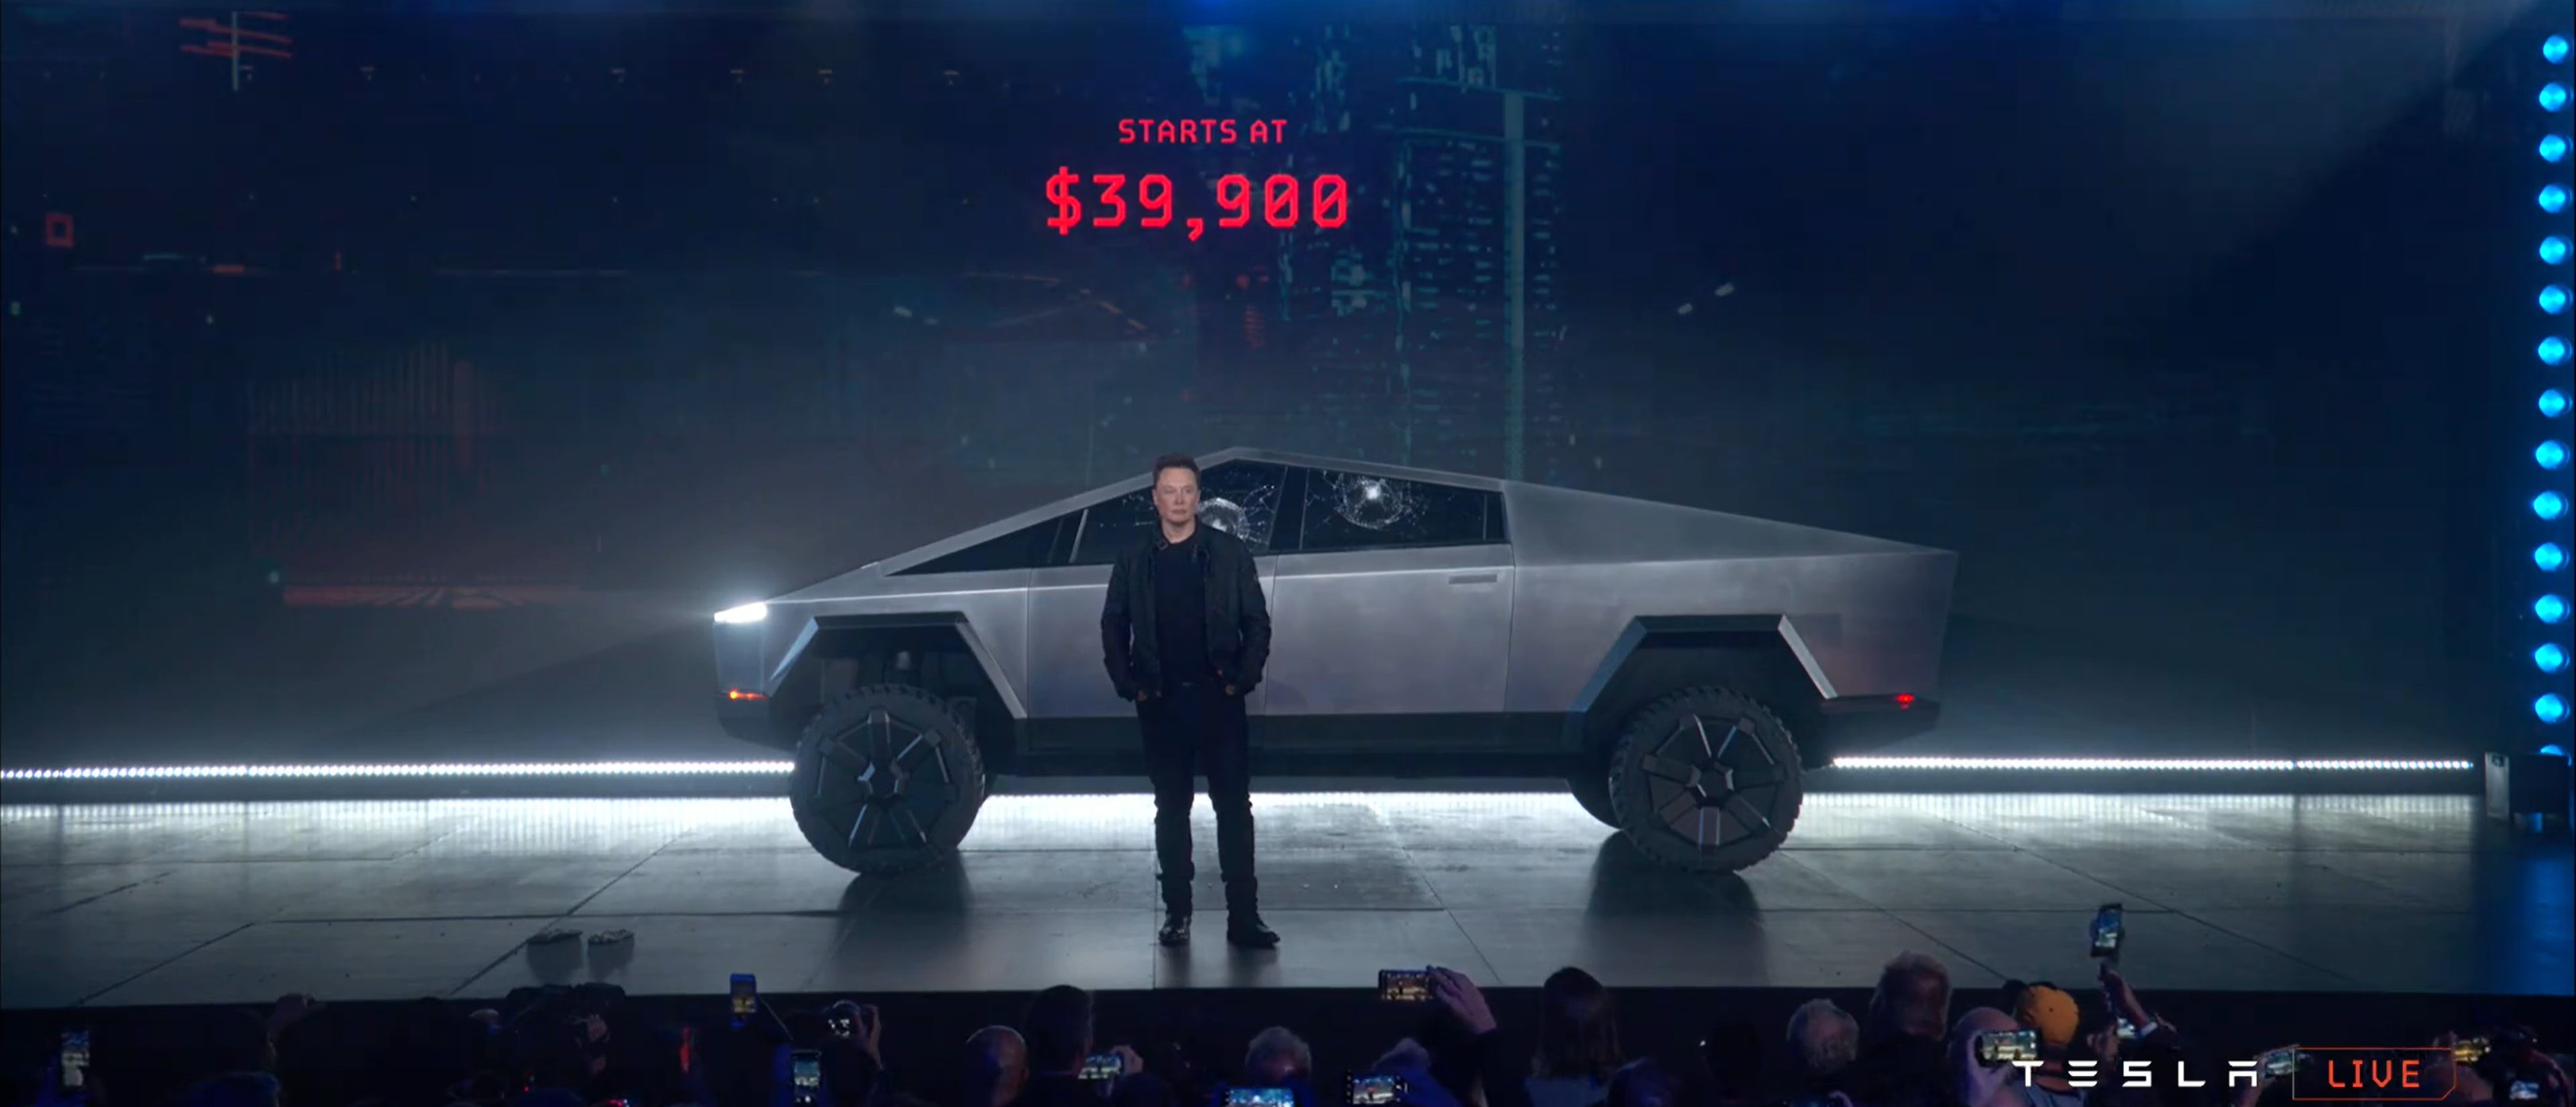 Tesla Battery Cost >> Tesla's Elon Musk was offered a truck design by Nikola CEO right after Cybertruck unveiling